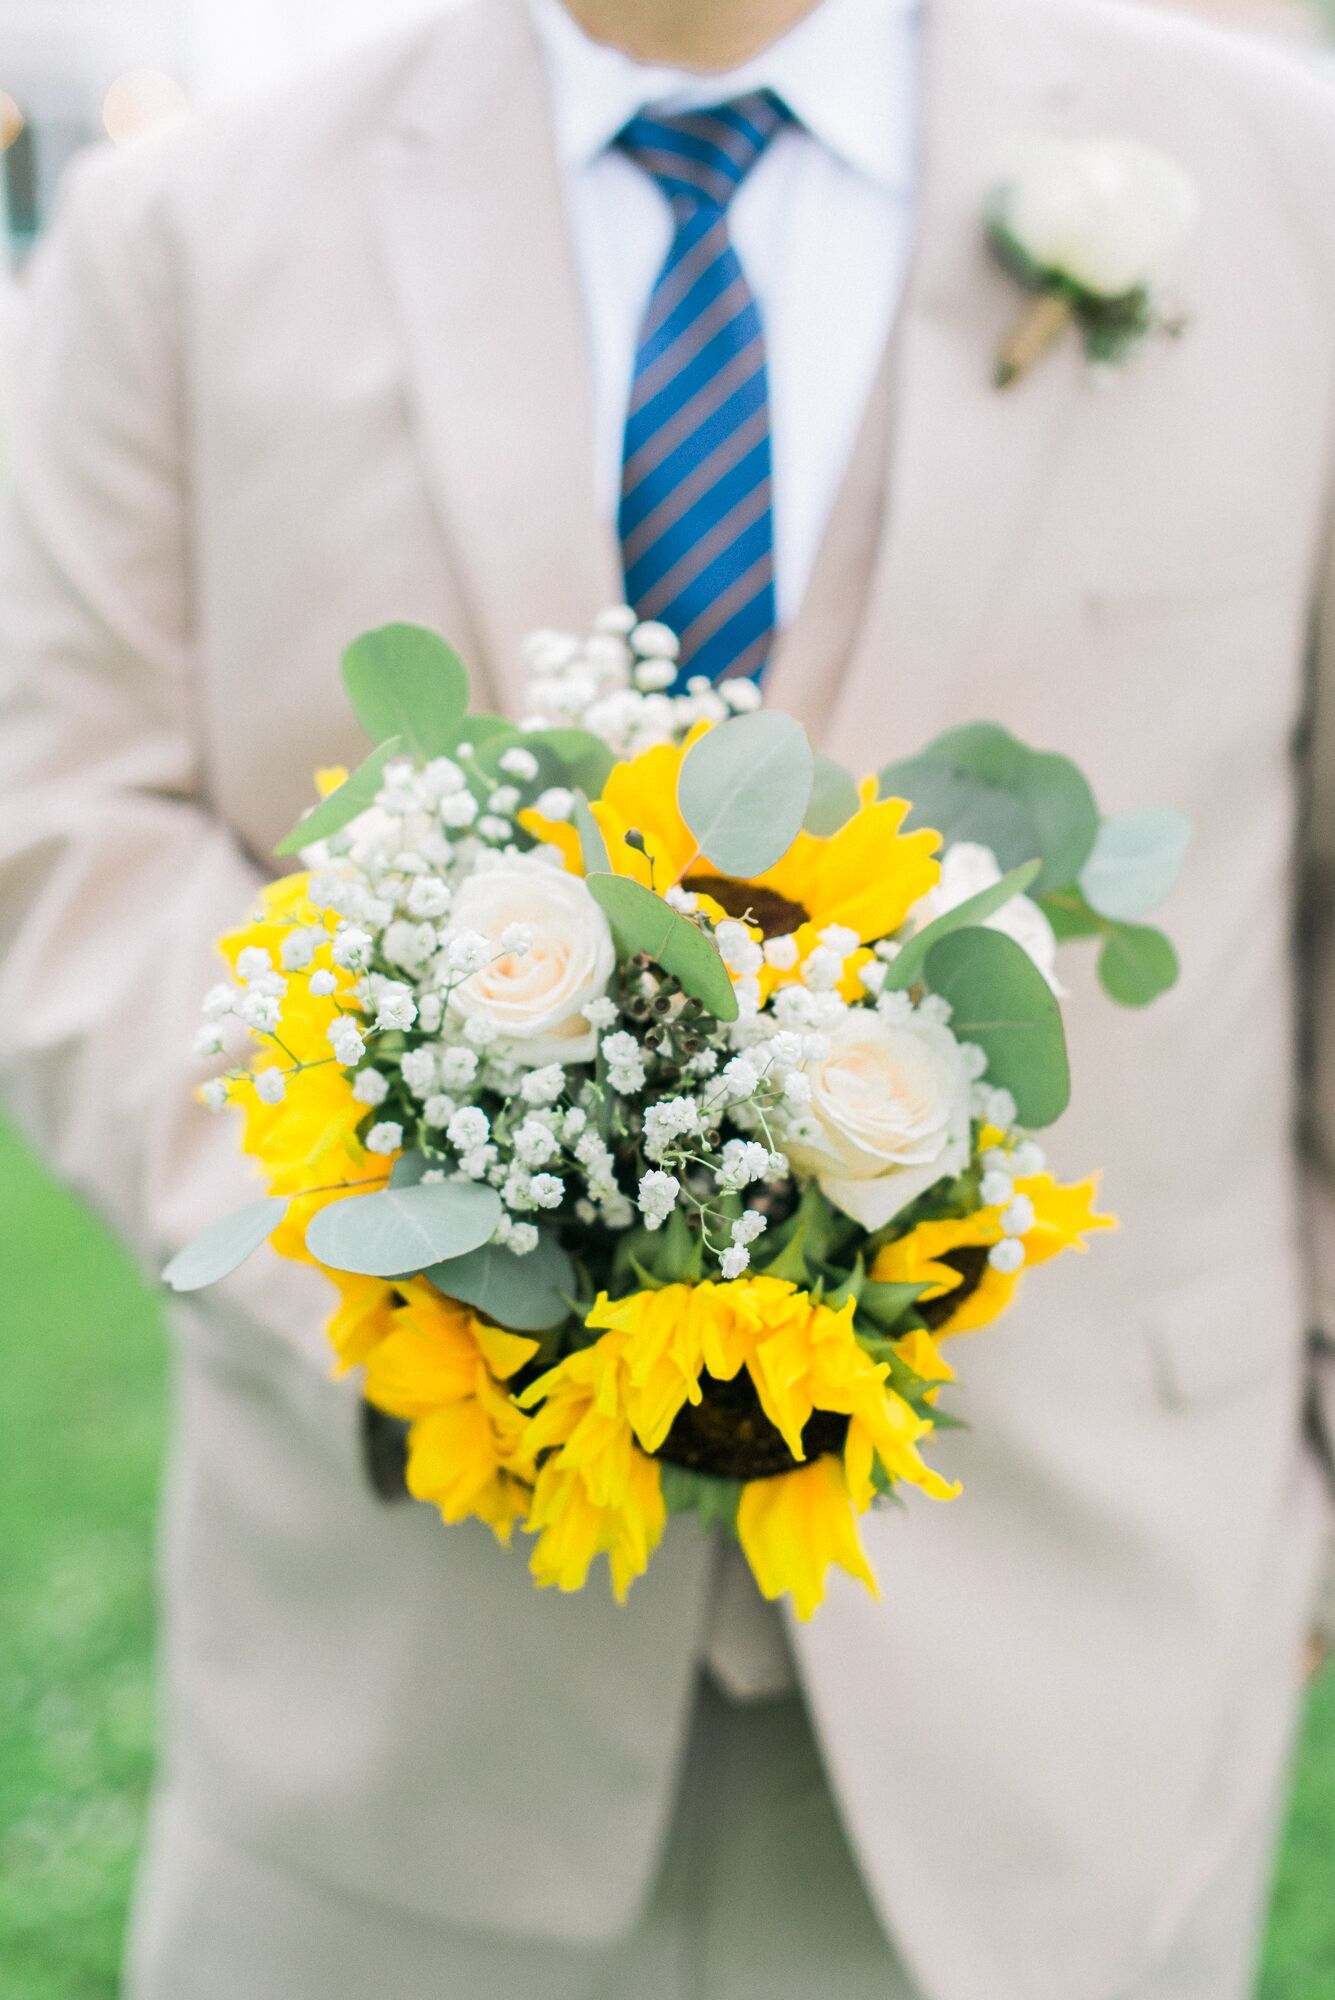 Natural White Rose And Sunflower Bouquet